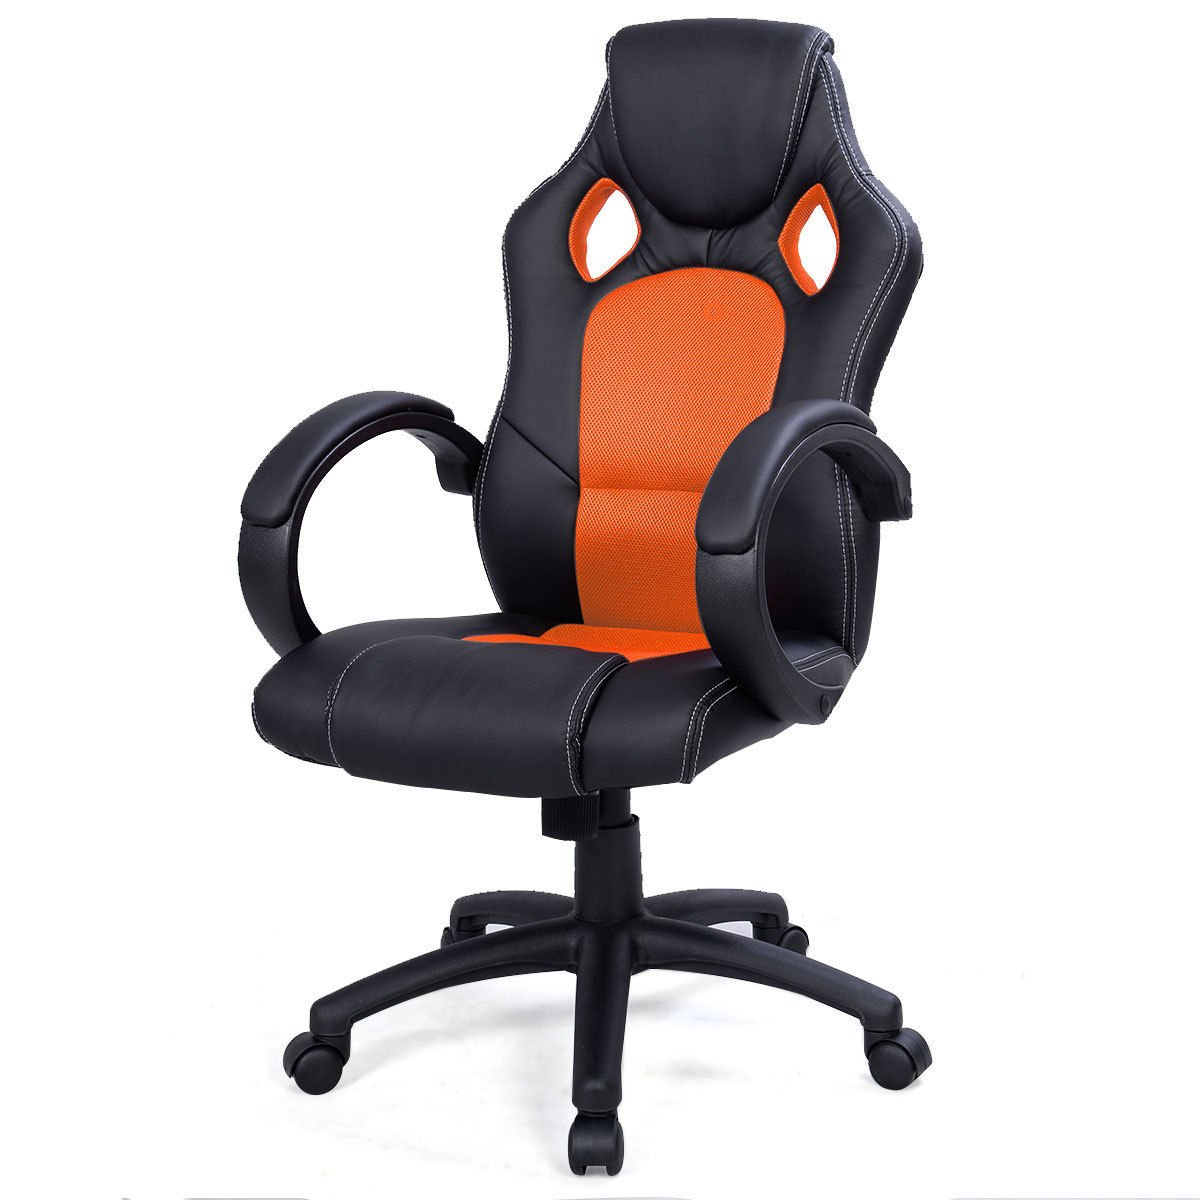 Back Race Car Style Bucket Seat Office Desk Chair Gaming Chair Orange